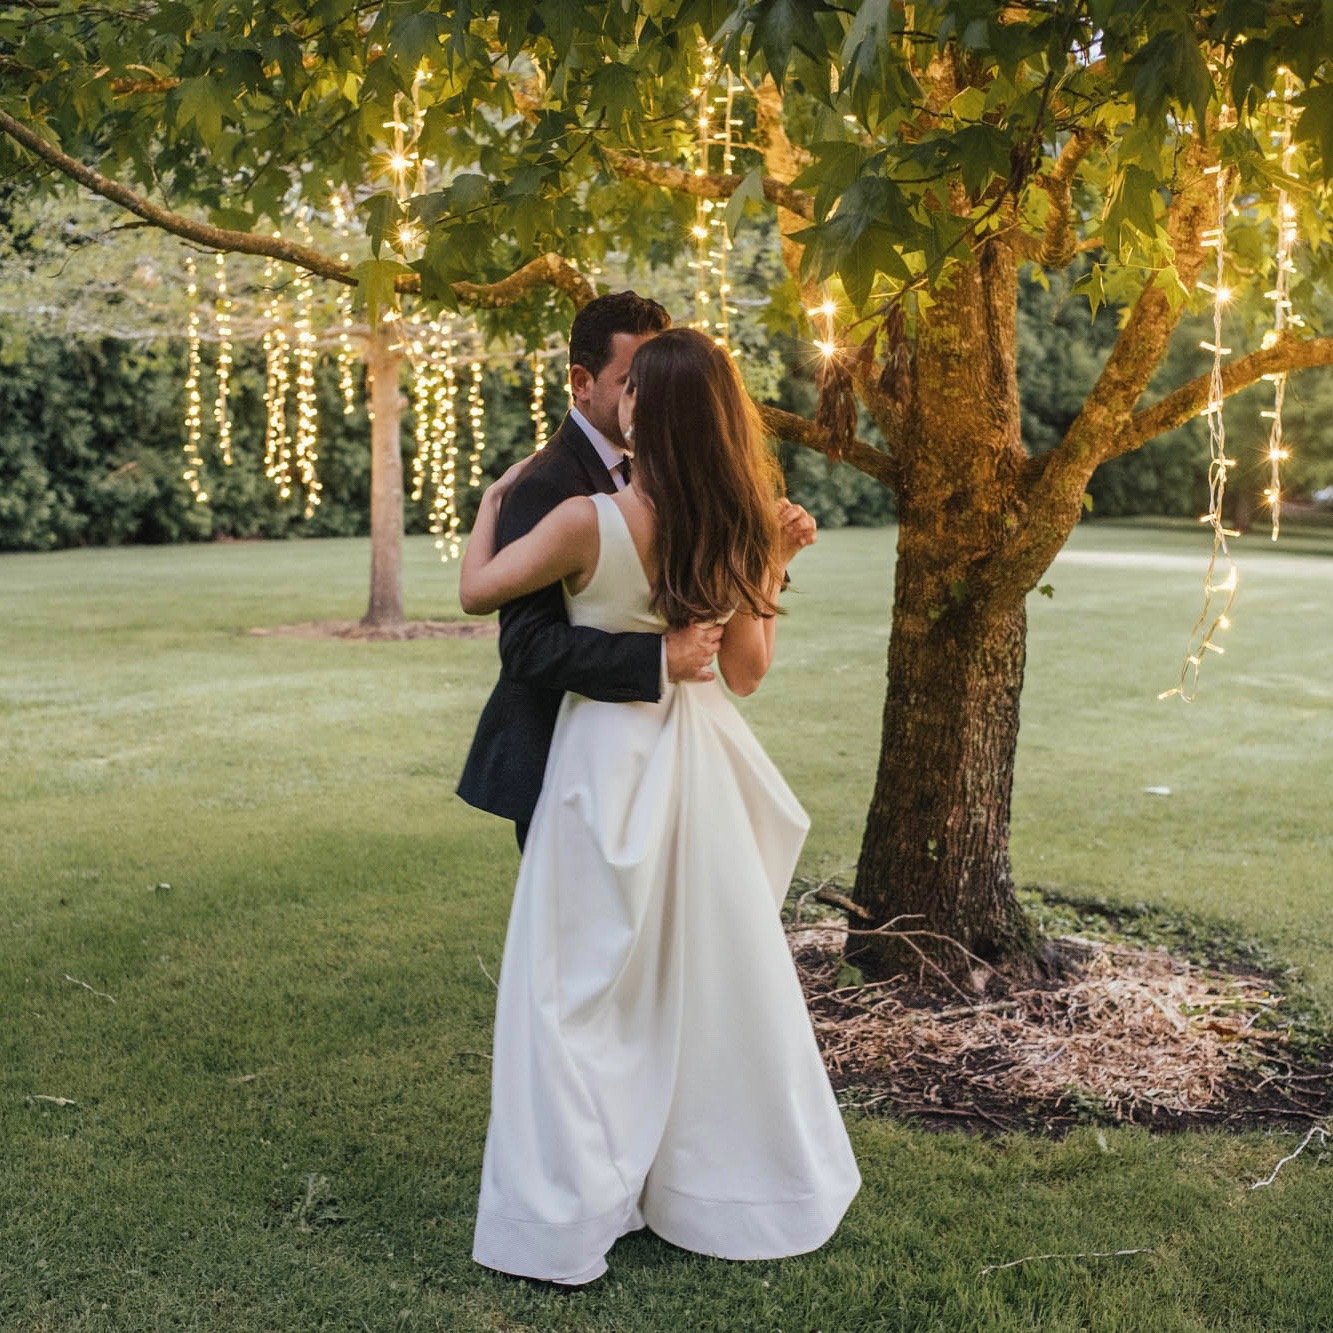 Private garden wedding  The string lights in the trees made for the most beautiful backdrop to the bridal table and we'd both like to thank you and your team so much an doing such an amazing job. The lights helped create such a unique setting for the night - beyond what we imagined we would get! So many of our guests were getting up and taking photos under the trees themselves :)